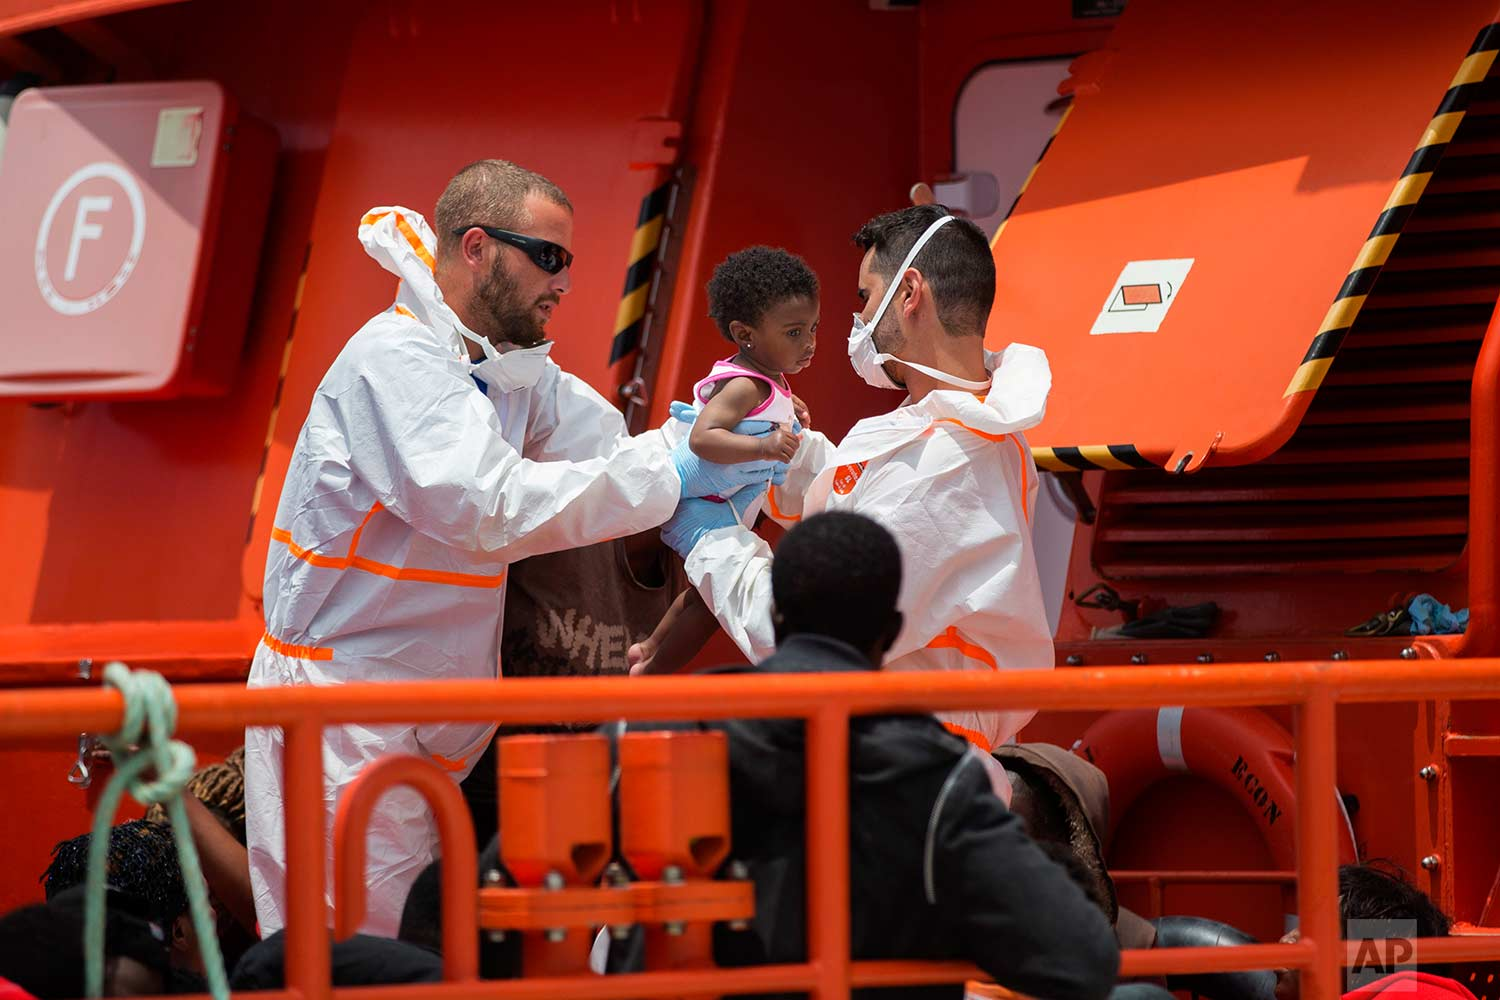 A baby is taken by rescue members at the port of Barbate, southern Spain, after being rescued by Spain's Maritime Rescue Service in the Strait of Gibraltar, Wednesday, June 27, 2018. (AP Photo/Emilio Morenatti)